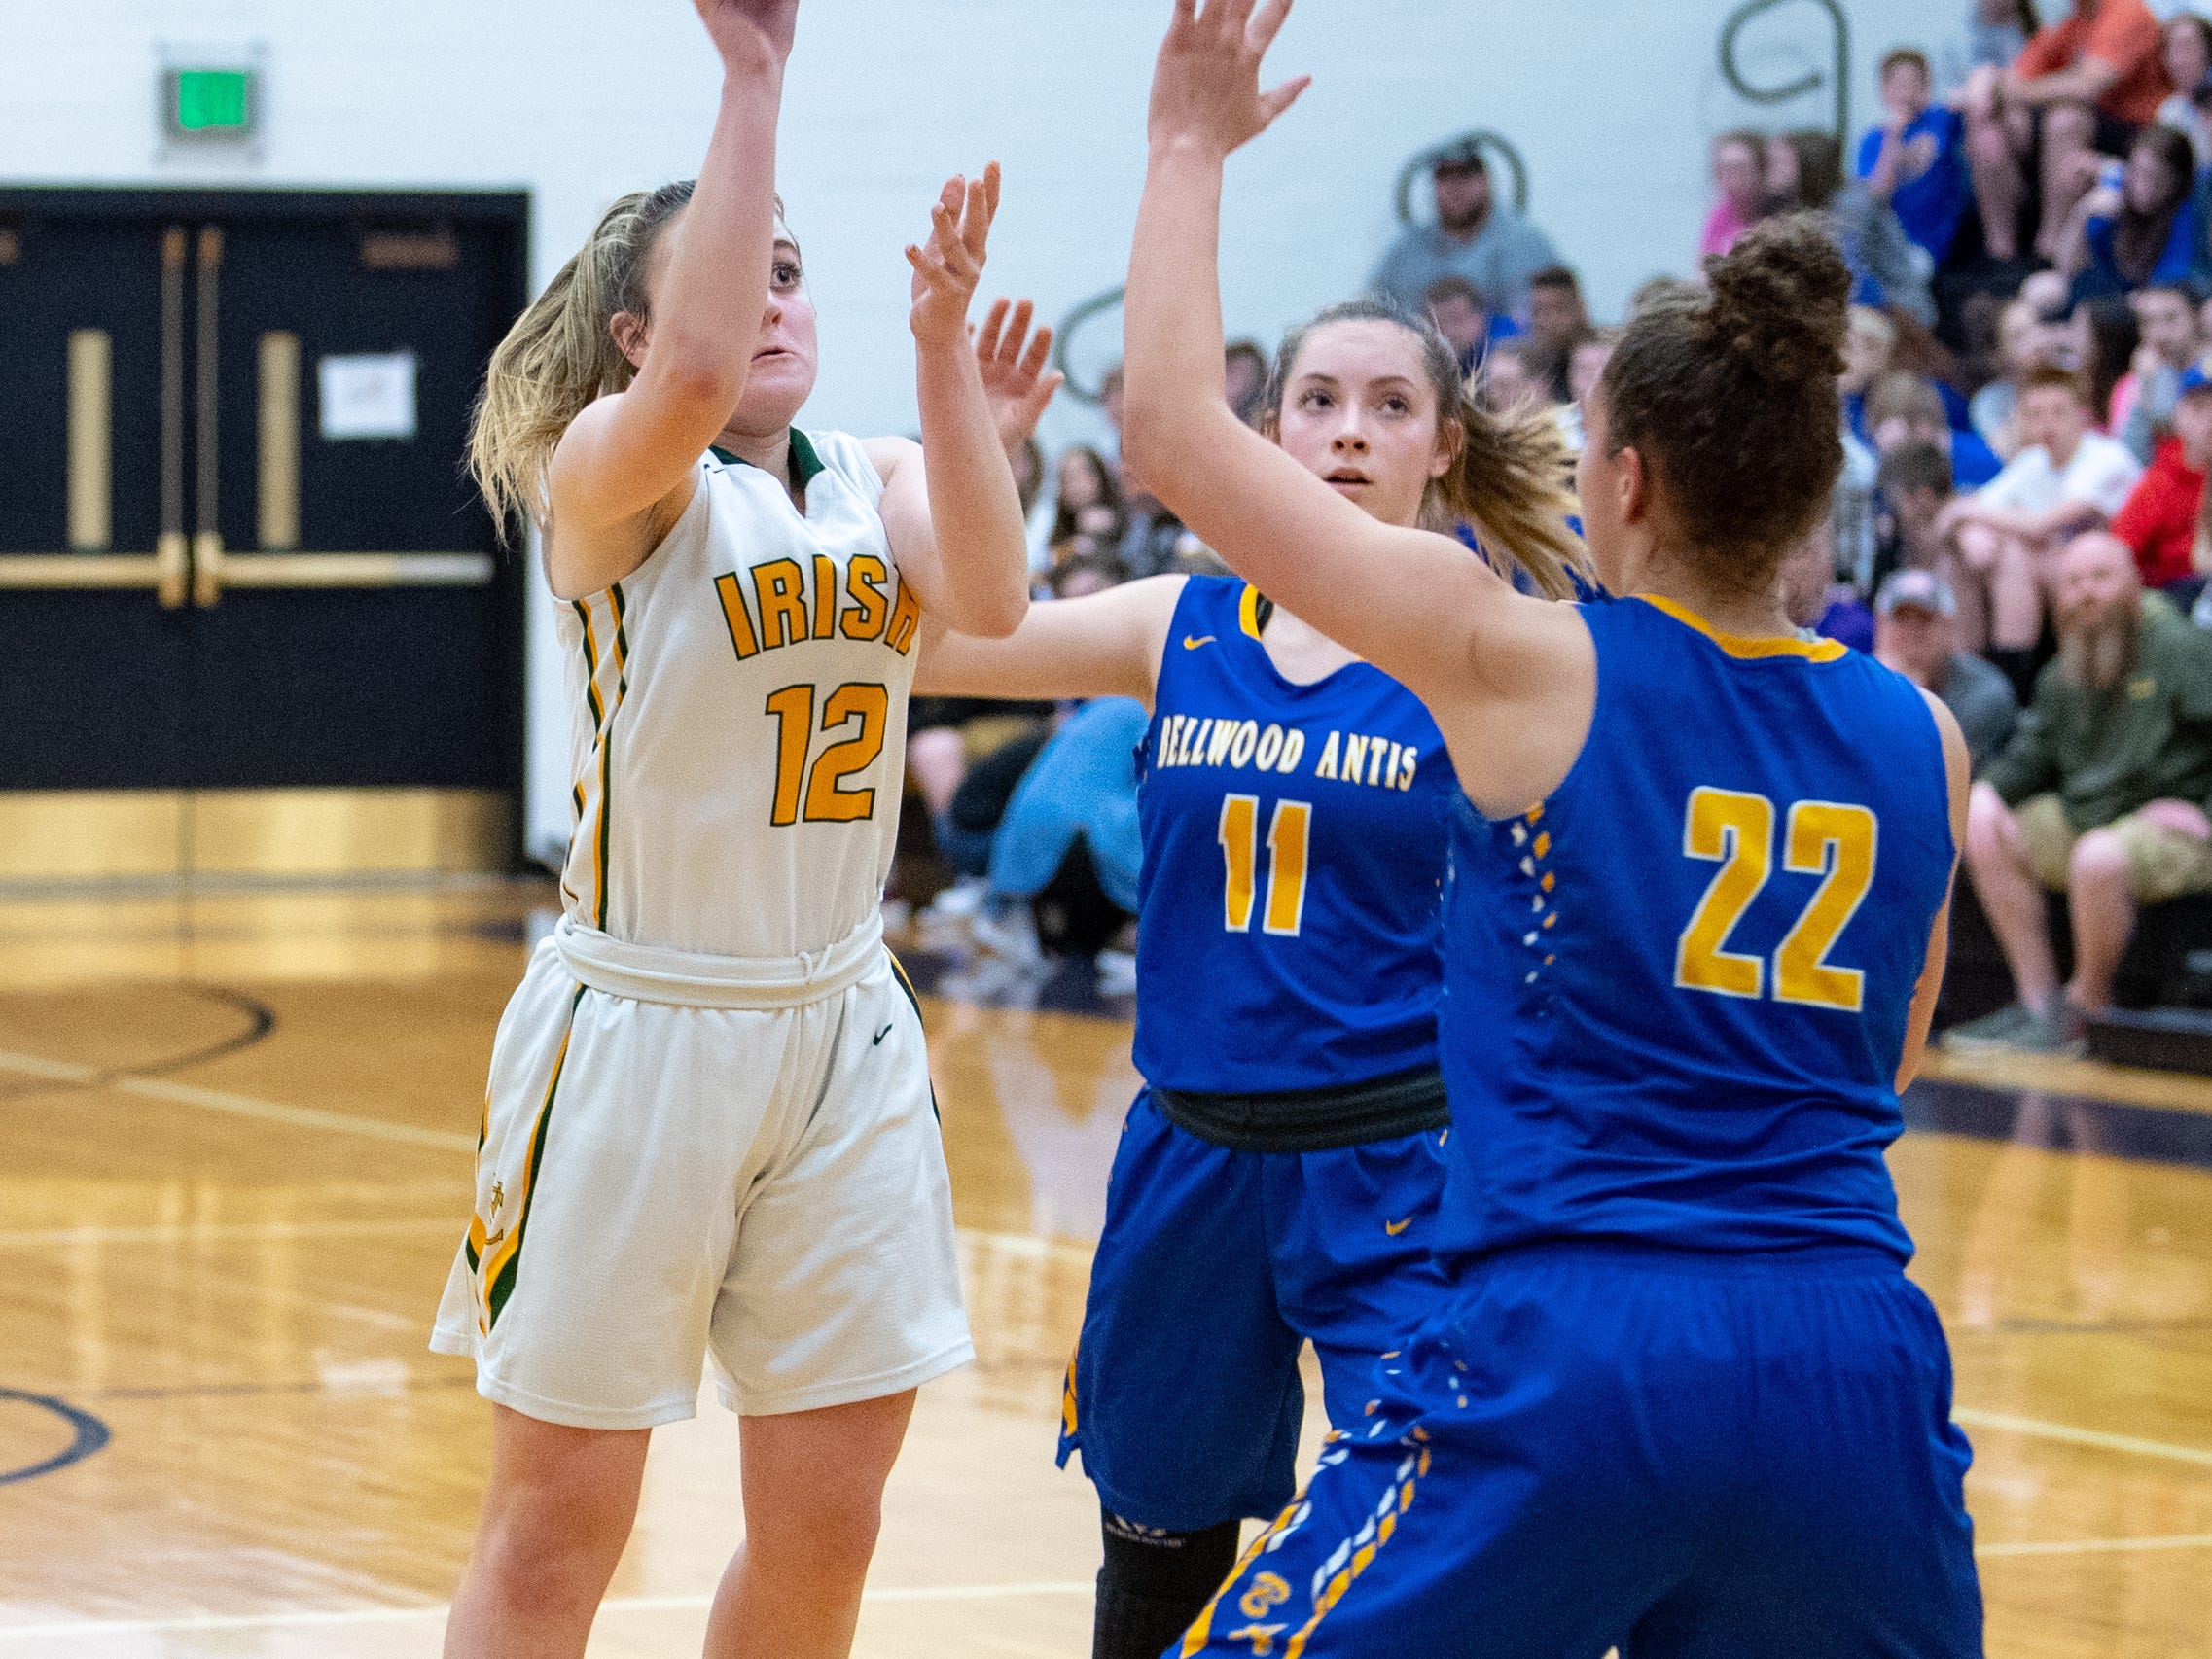 Samantha Bulik (12) takes the shot during the PIAA girls' basketball game between York Catholic and Bellwood-Antis, March 15, 2019 at Mifflin County High School. The Fighting Irish lost to the Lady Blue Devils 53 to 47.